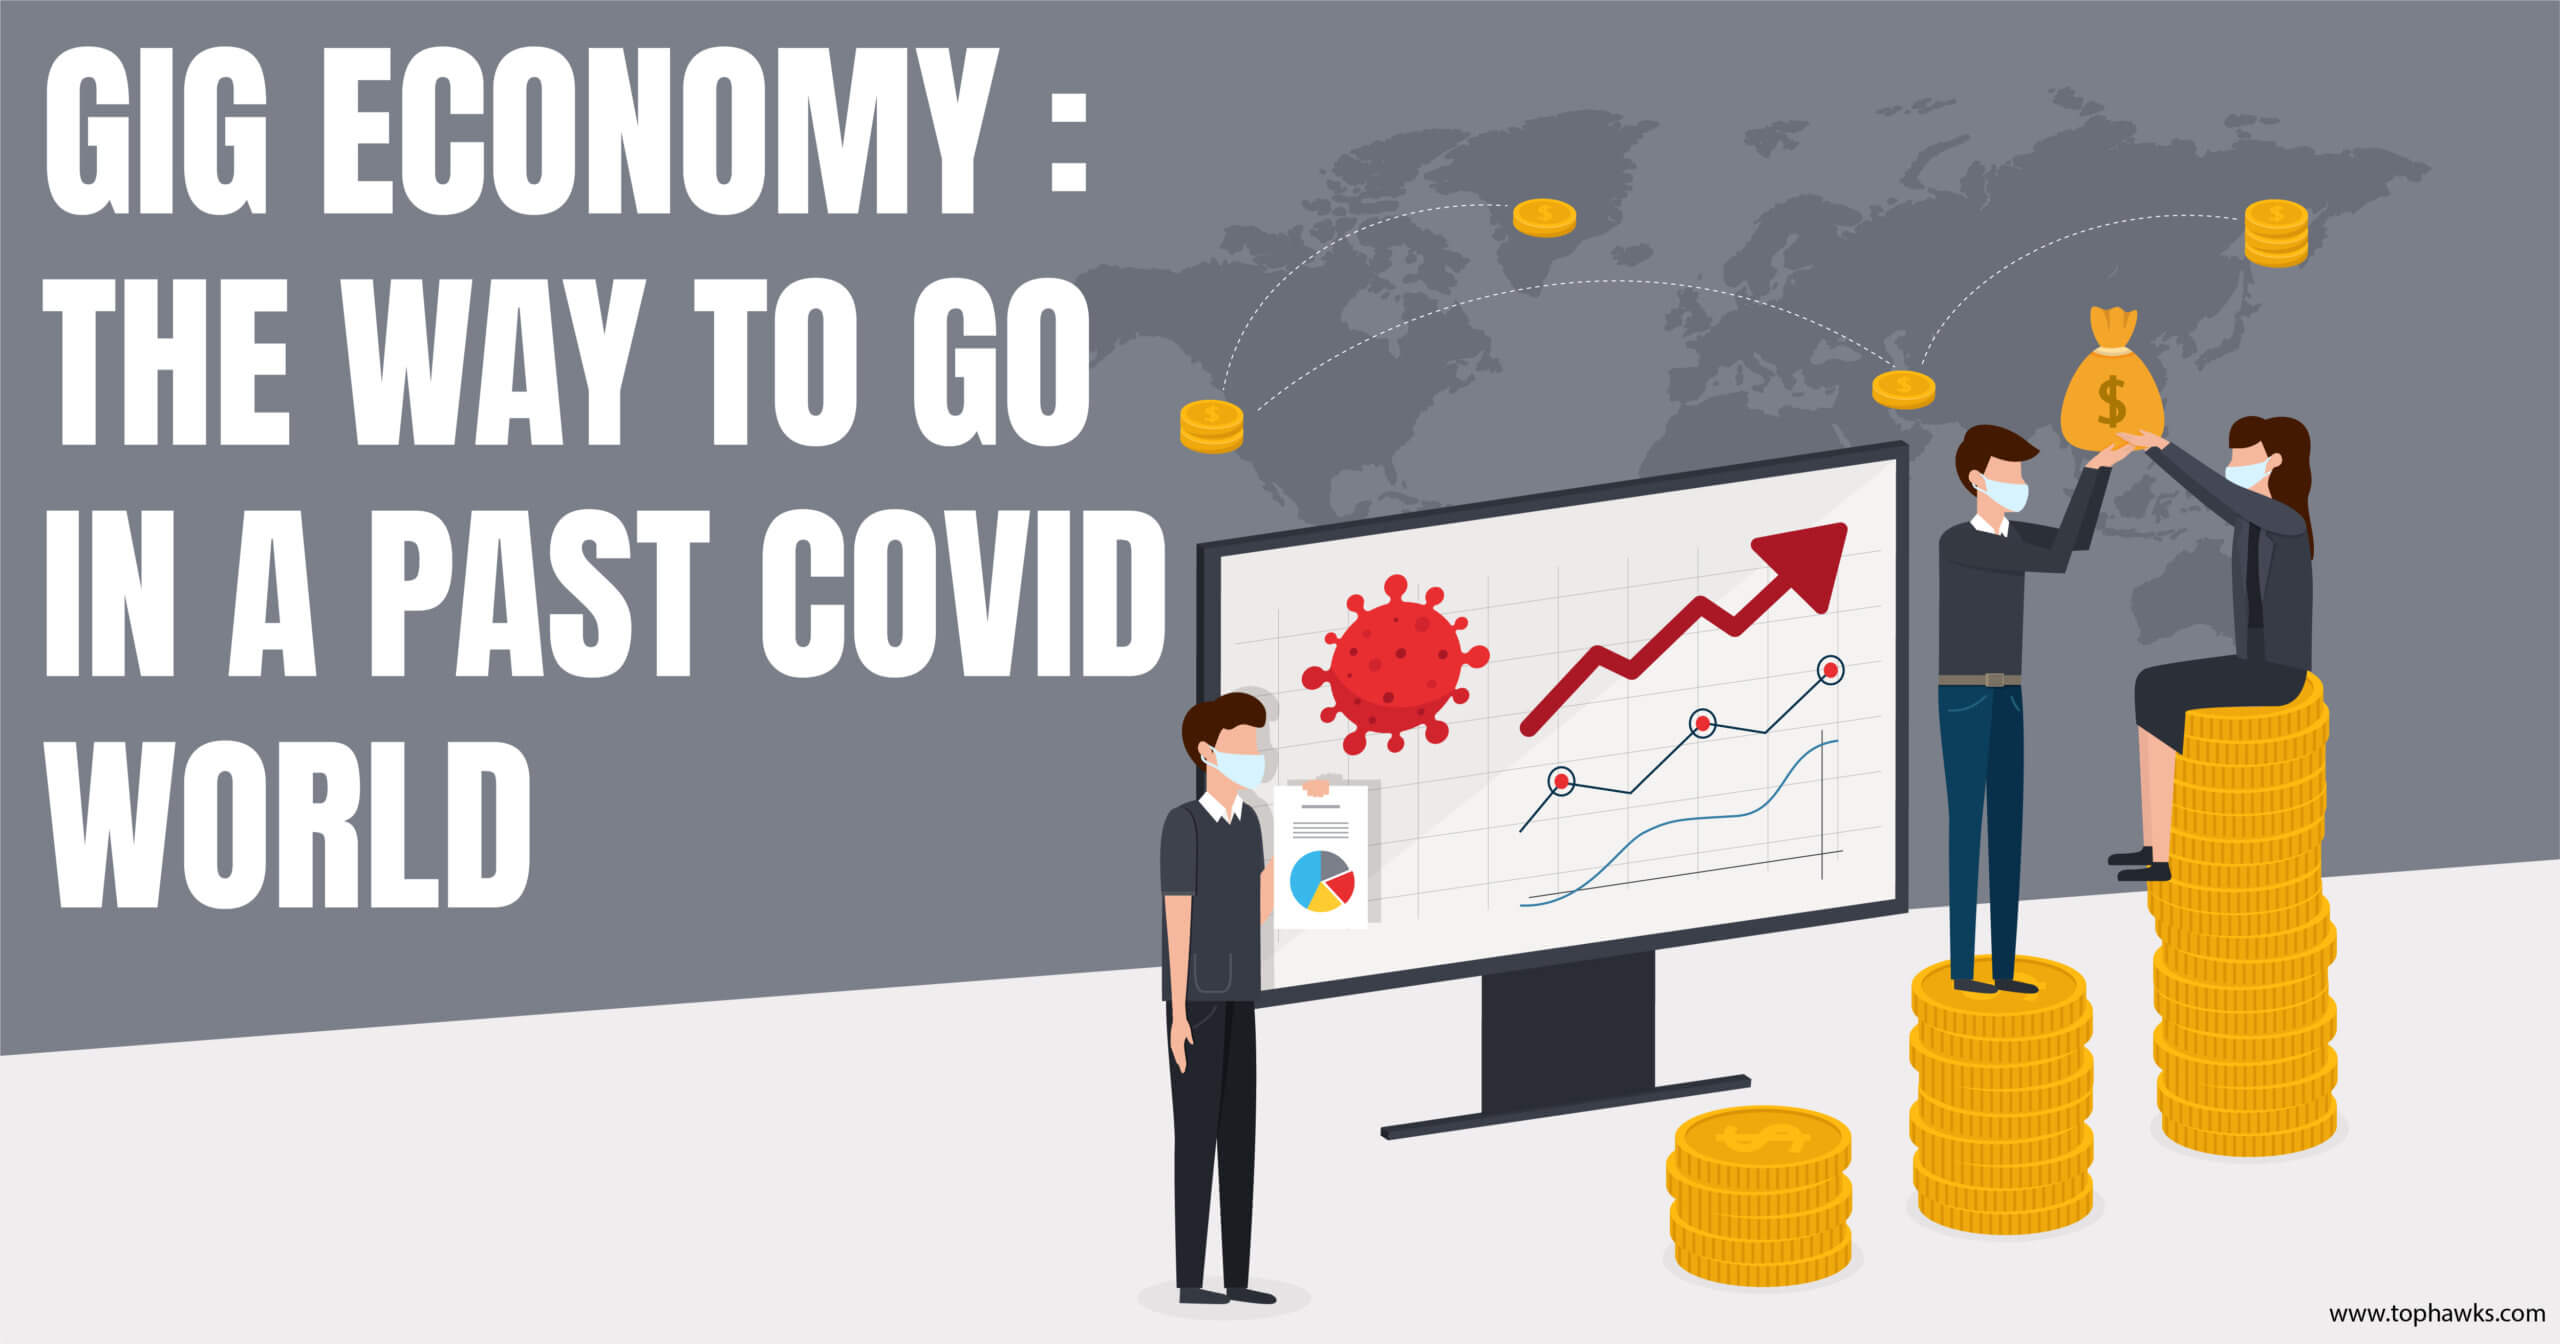 Gig Economy: The way to go in a post covid world